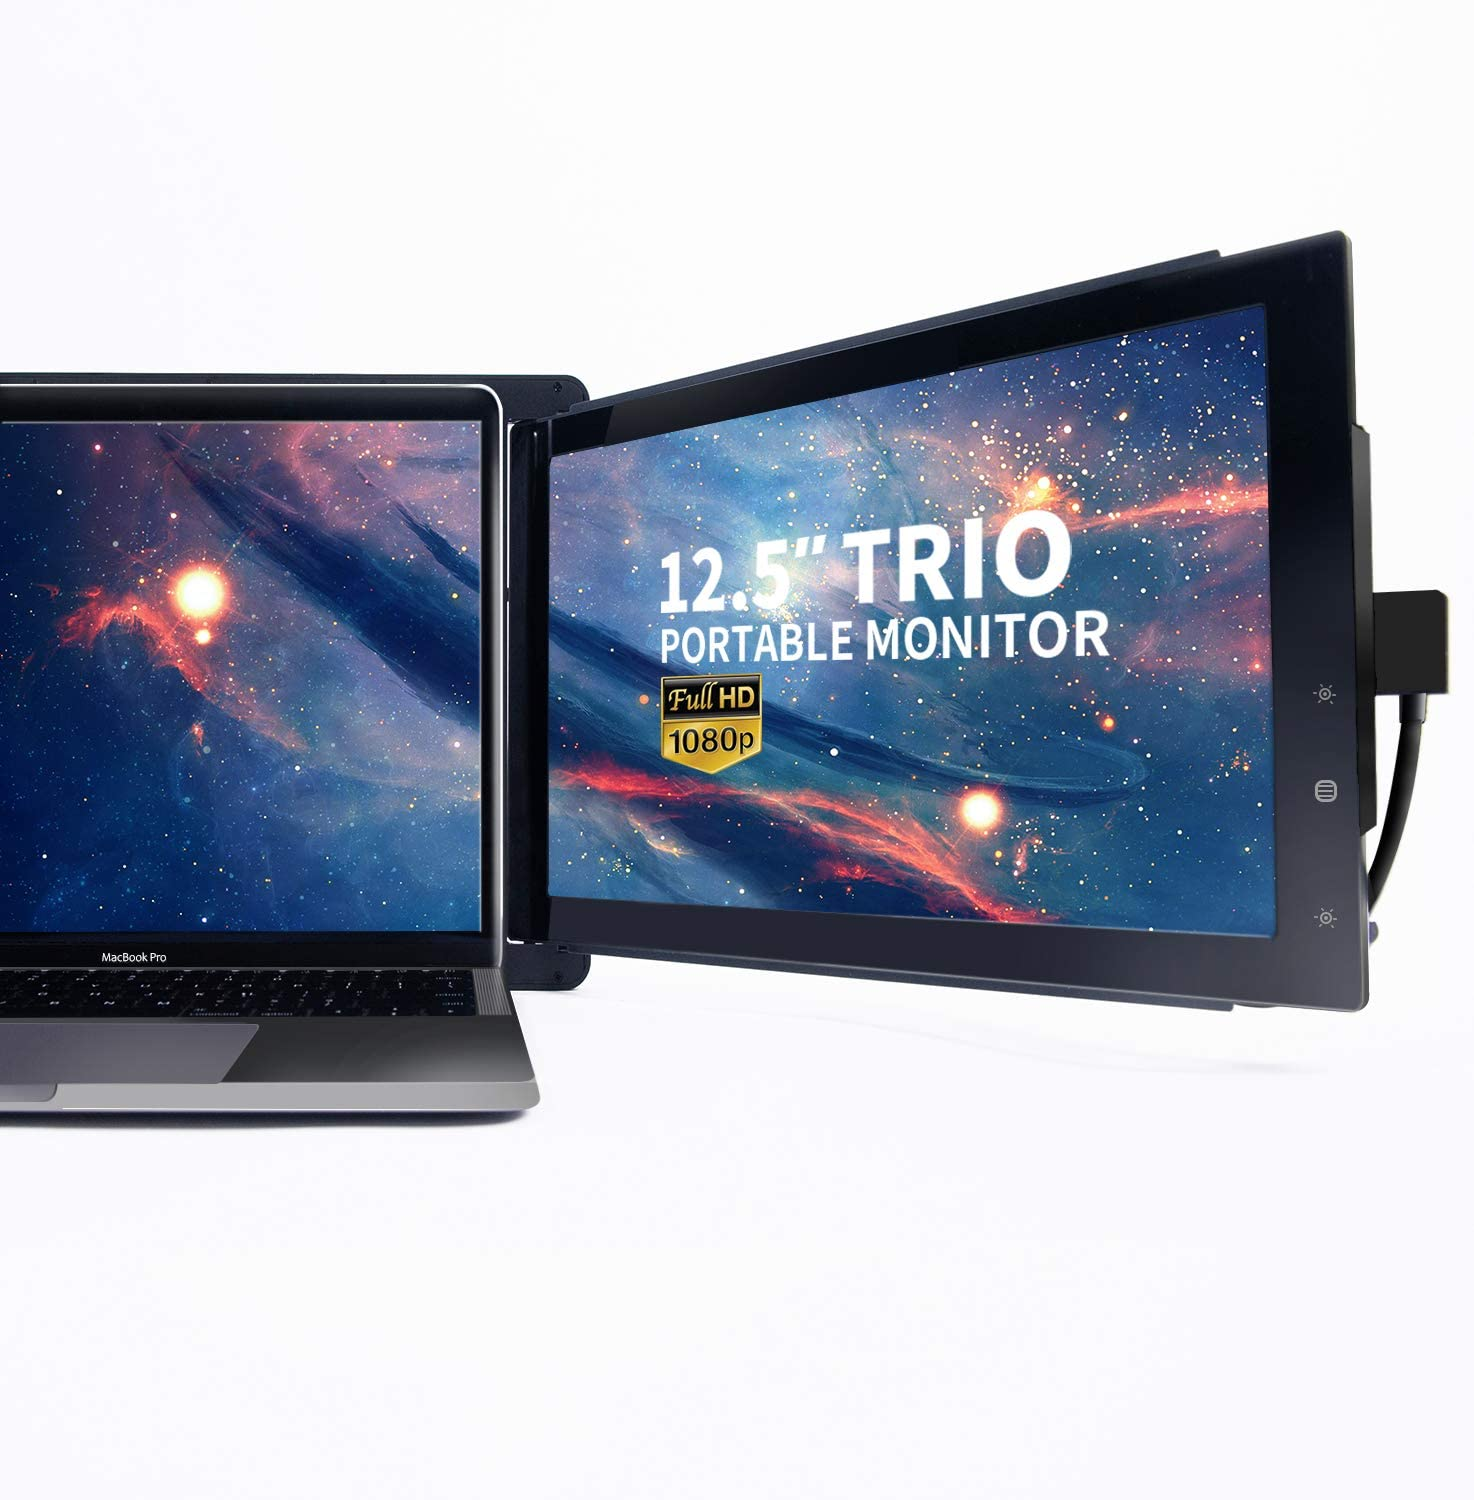 "Trio Slide Portable Monitor for Laptop,The On-The-Go Dual & Triple Screen Laptop Monitor, USB A/Type-C, Lightweight Design,Mac, PC,Linux, Chromebook 13-17 Laptops (One Trio 12.5"" Monitor)"